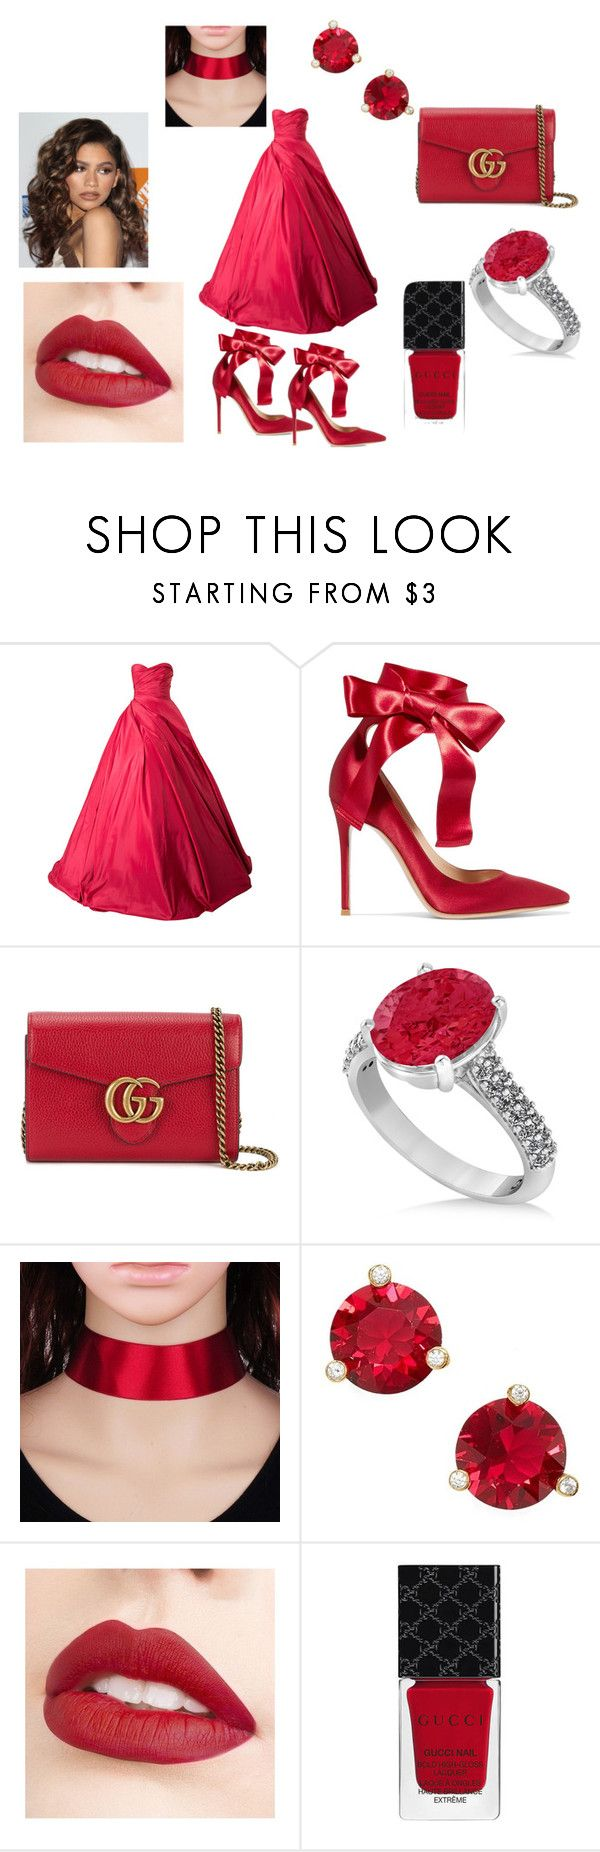 """""""Dramatic Rose"""" by outfit-creator ❤ liked on Polyvore featuring Romona Keveža, Gianvito Rossi, Gucci, Allurez, Kate Spade, Jouer and Coleman"""